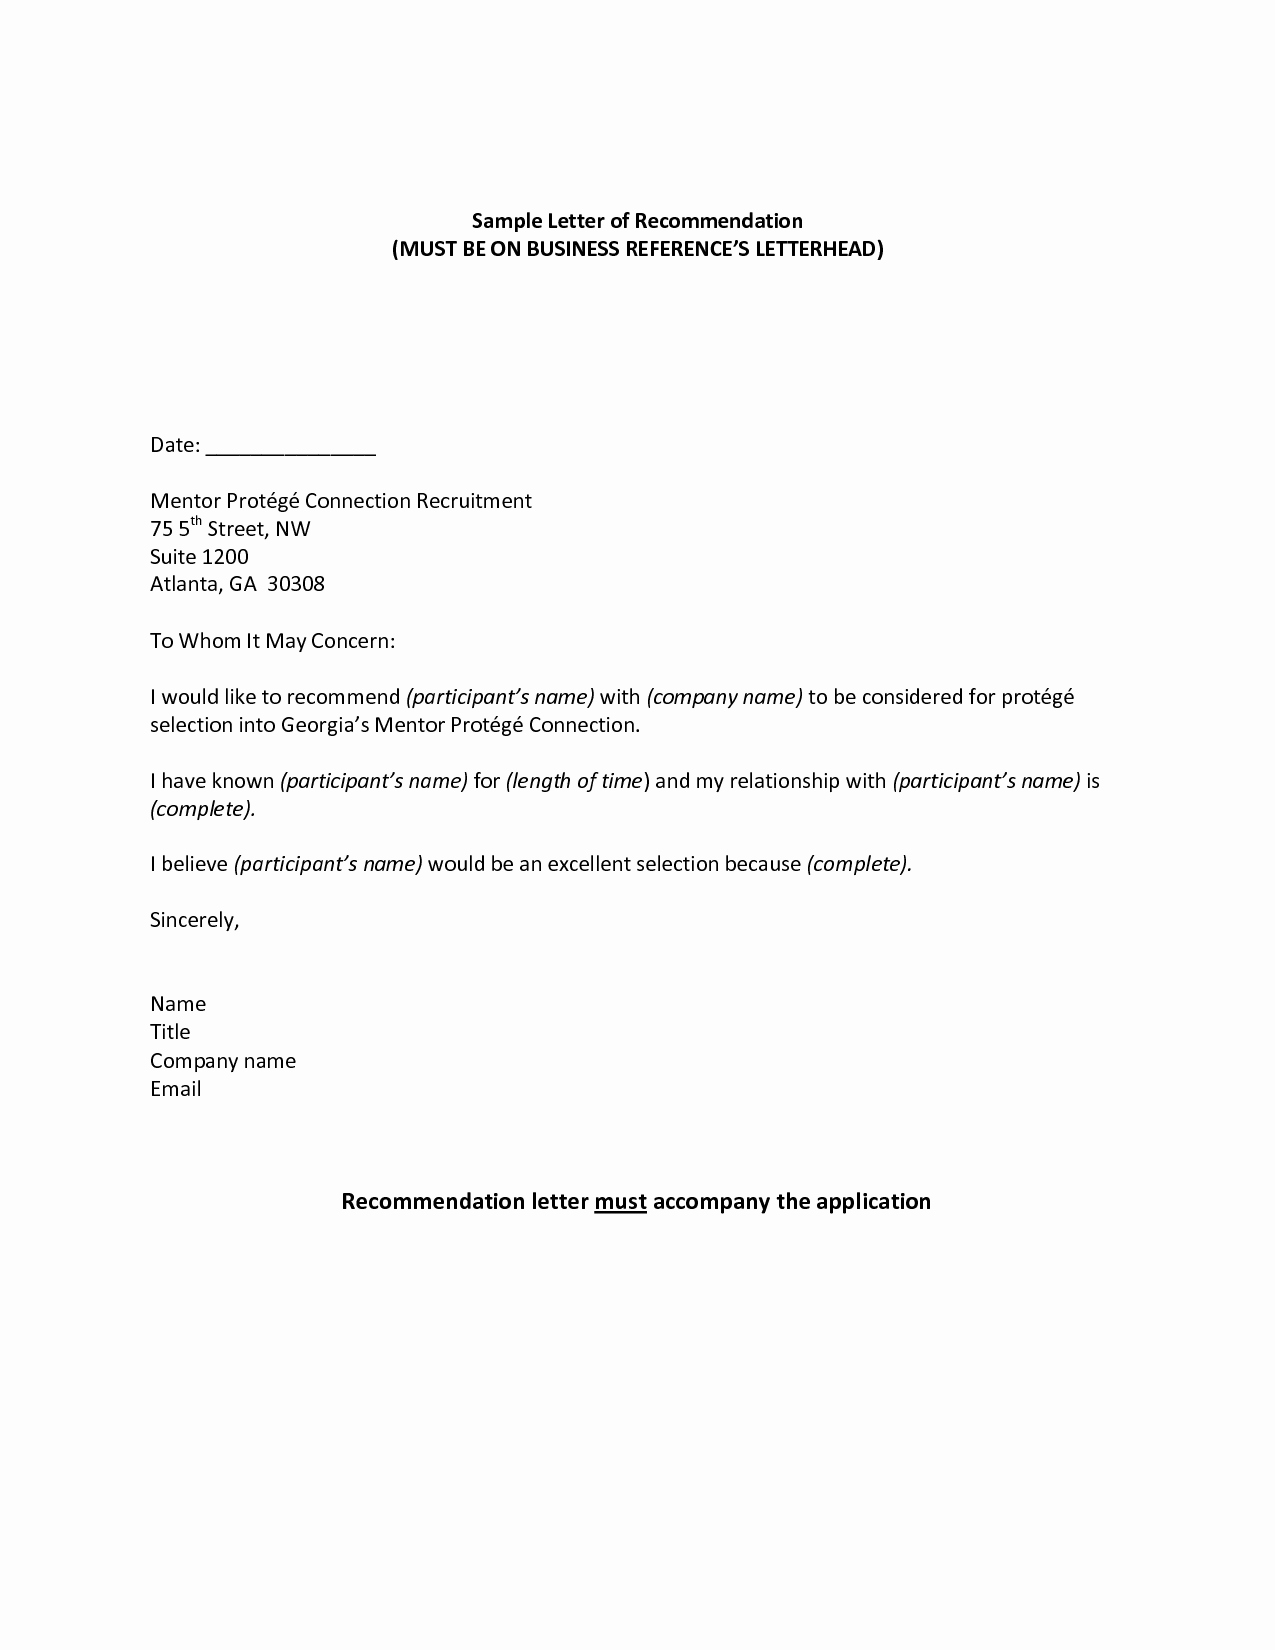 Letter Of Recommendation Template Elegant Professional Reference Sample Re Mendation Letter Jos